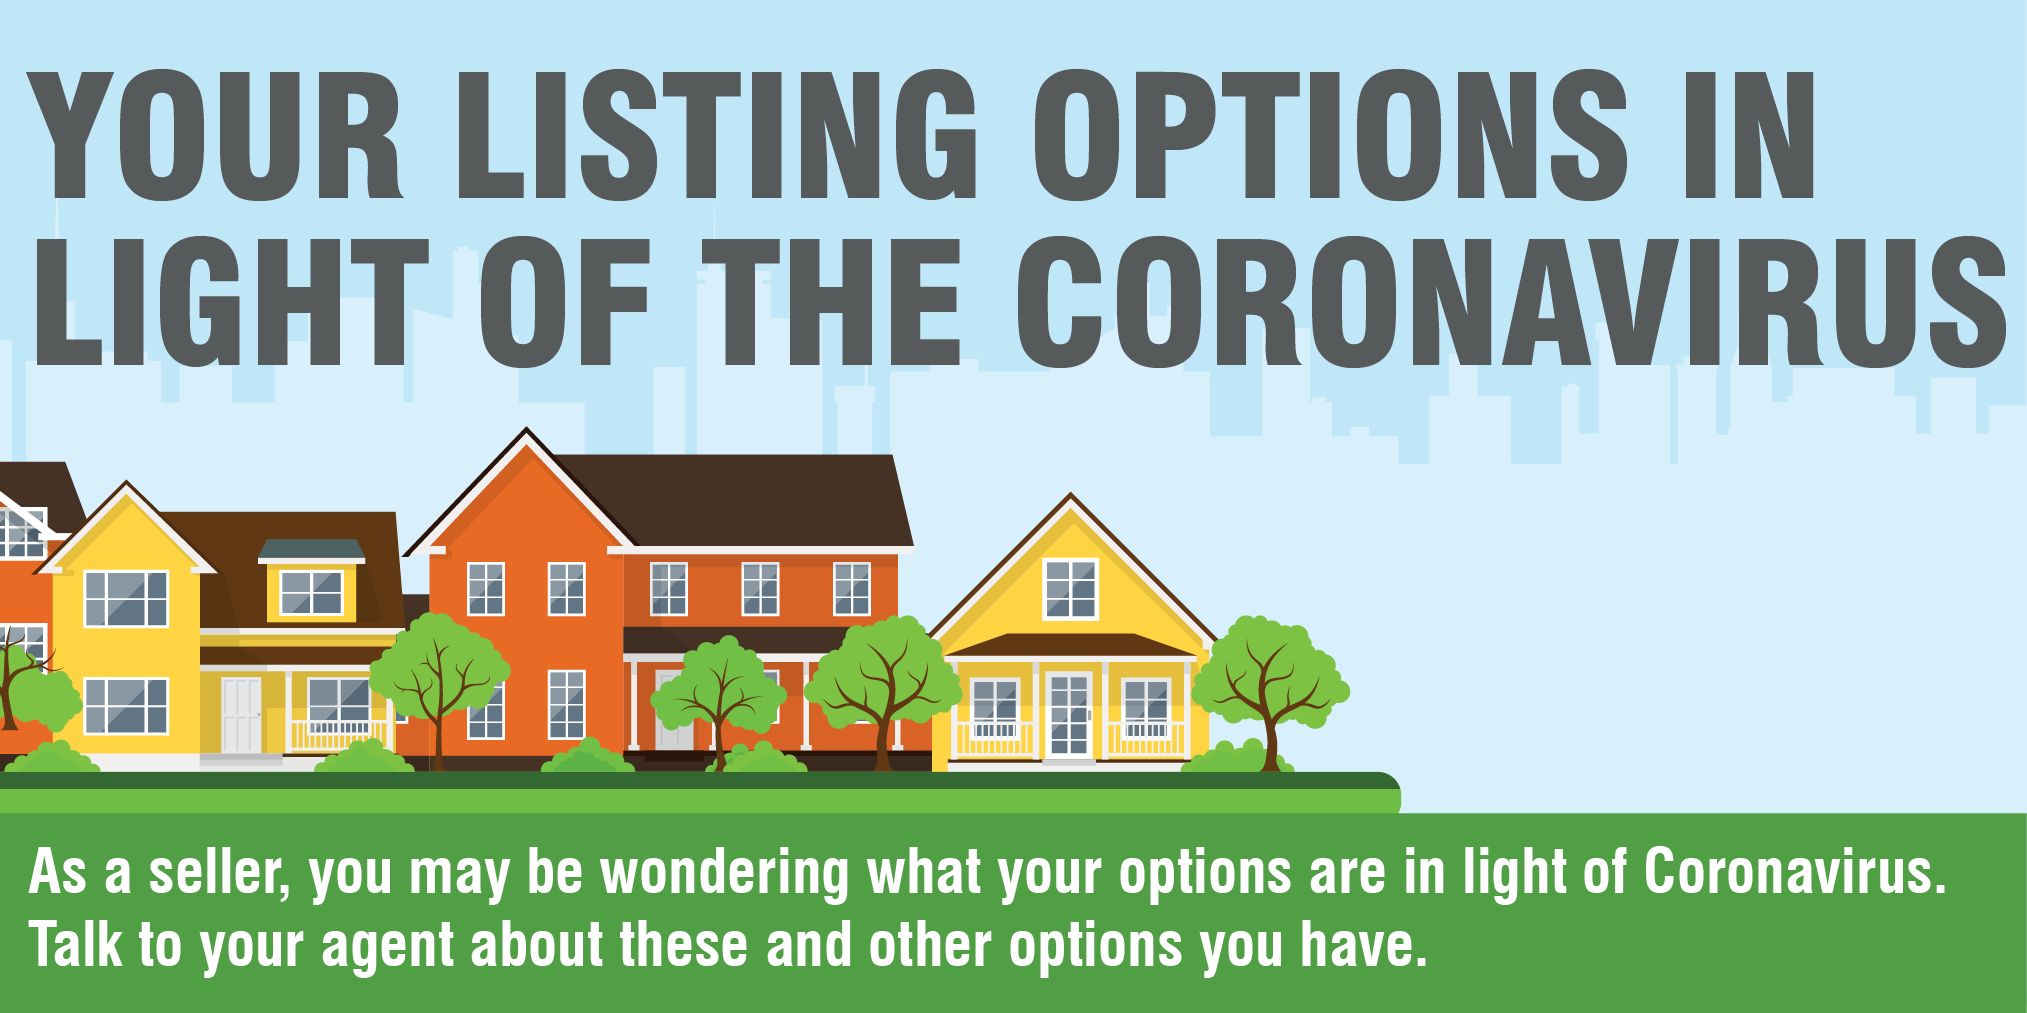 Your Listing Options in Light of the Coronavirus